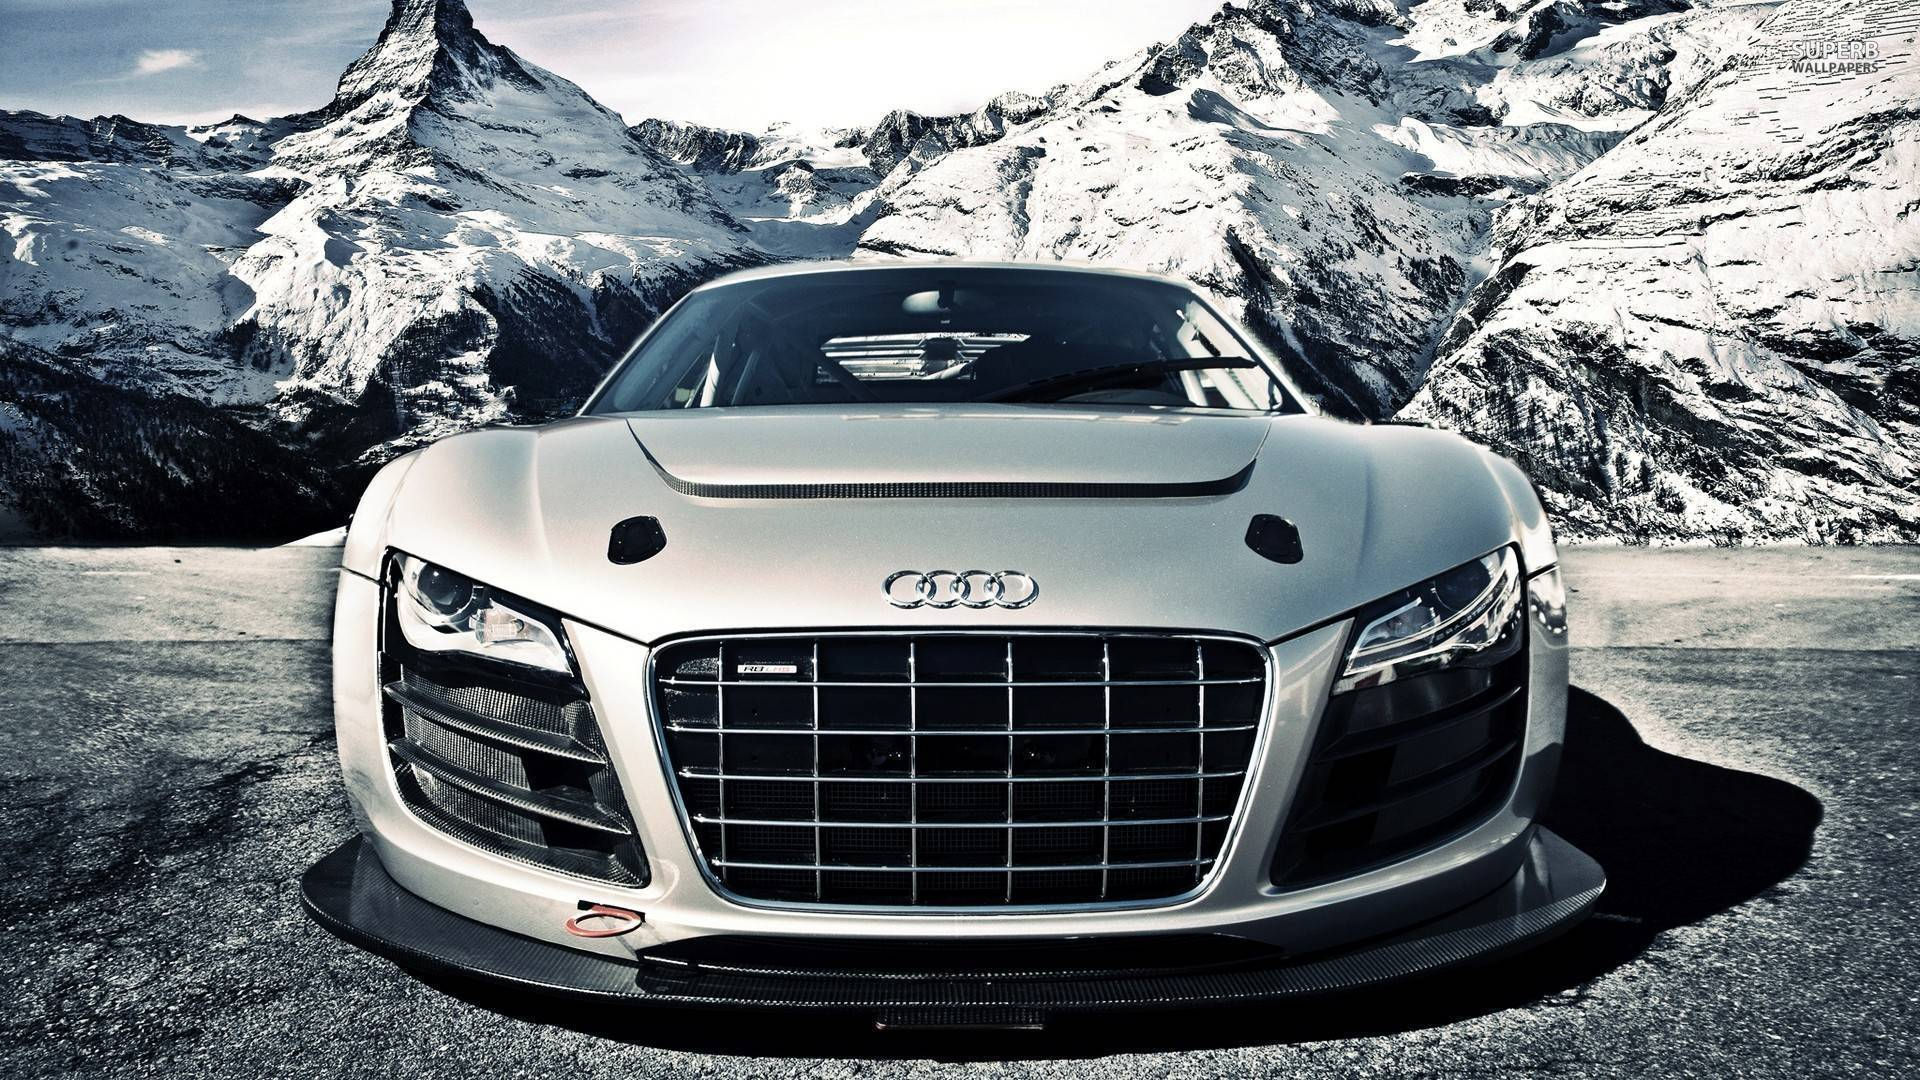 Audi R8 Wallpapers and Background Images   stmednet 1920x1080